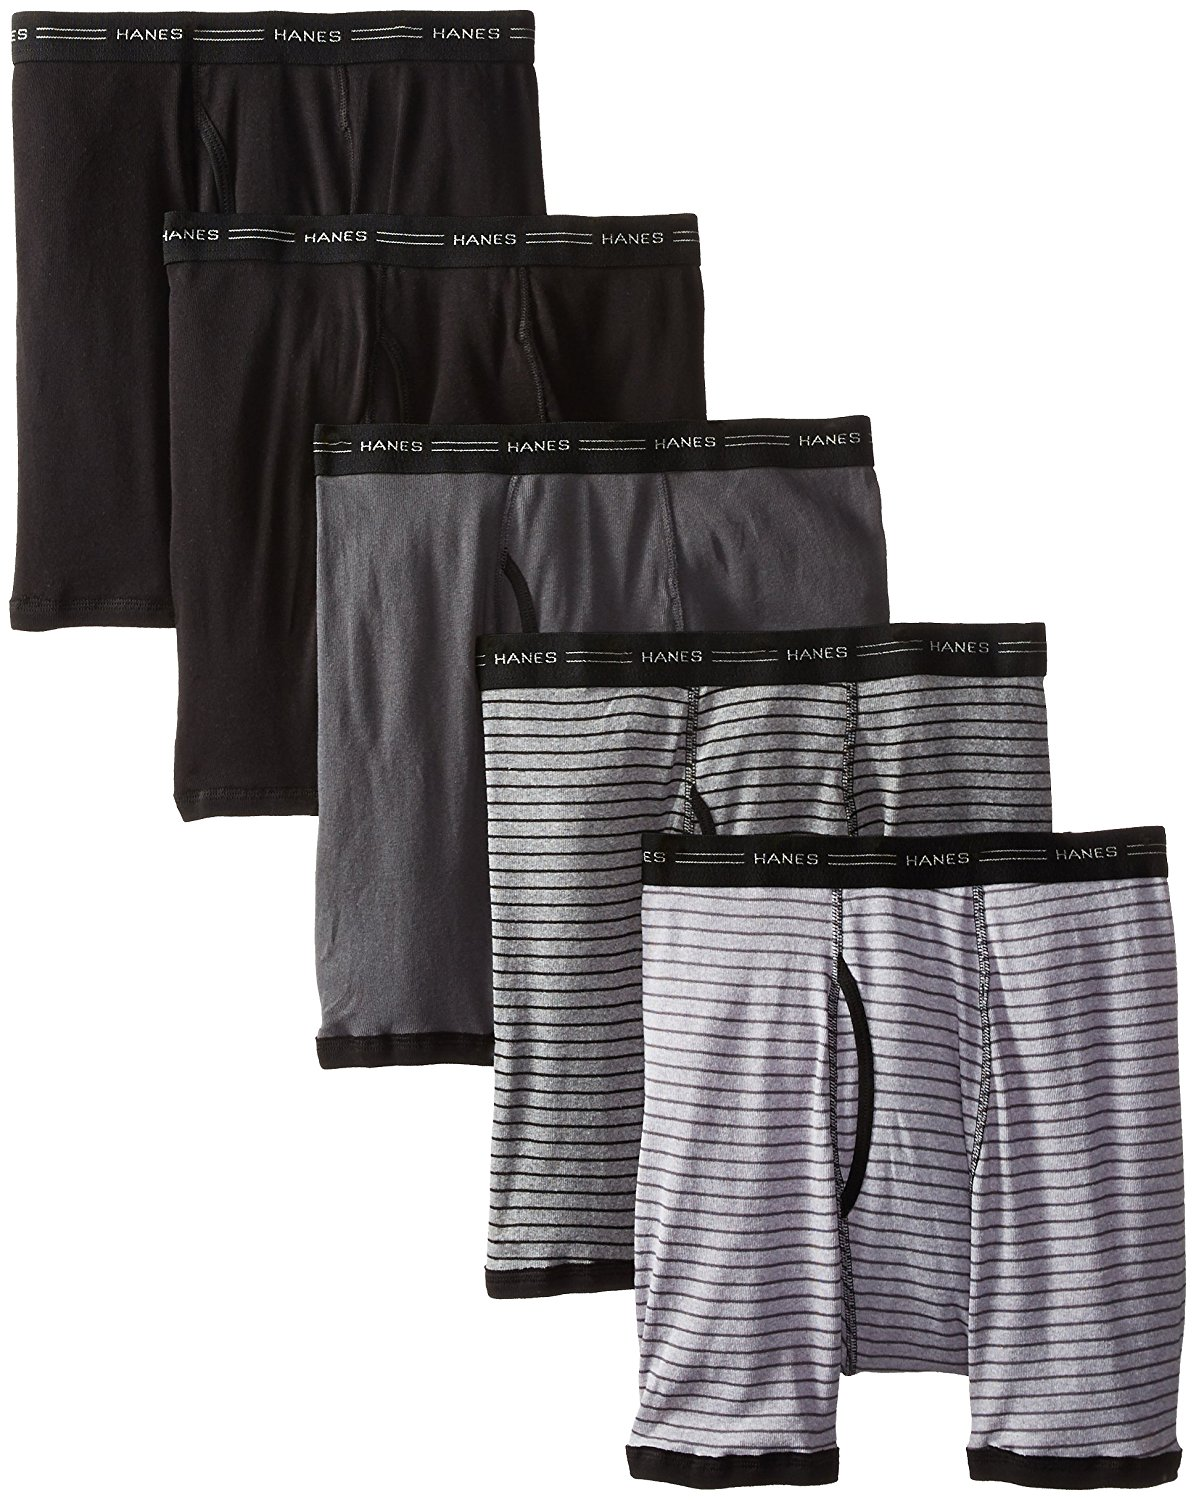 HANES - BOXERS - STRIPES ASSORTED - 6 PACK - FreshIQ Comfort Flex Red Label Stripes Waistband Boxer - 2XLARGE - 2XL